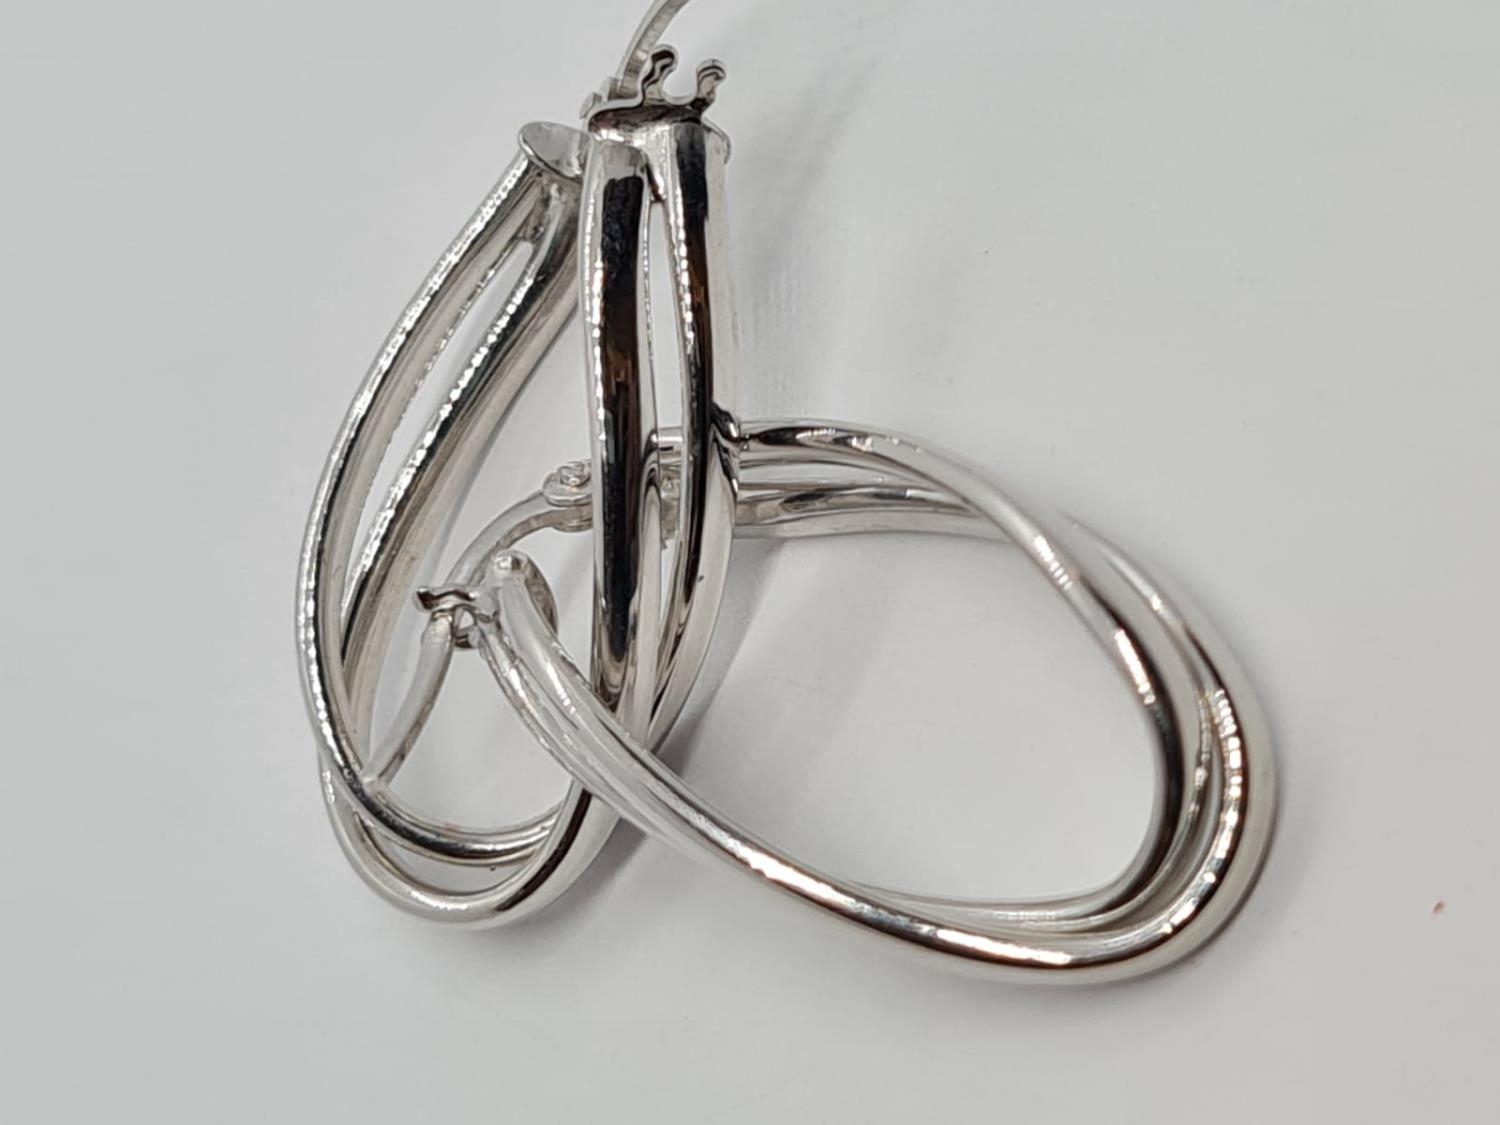 PAIR OF 9K WHITE GOLD CREOLE TWIST EARRINGS 1.5G - Image 2 of 3